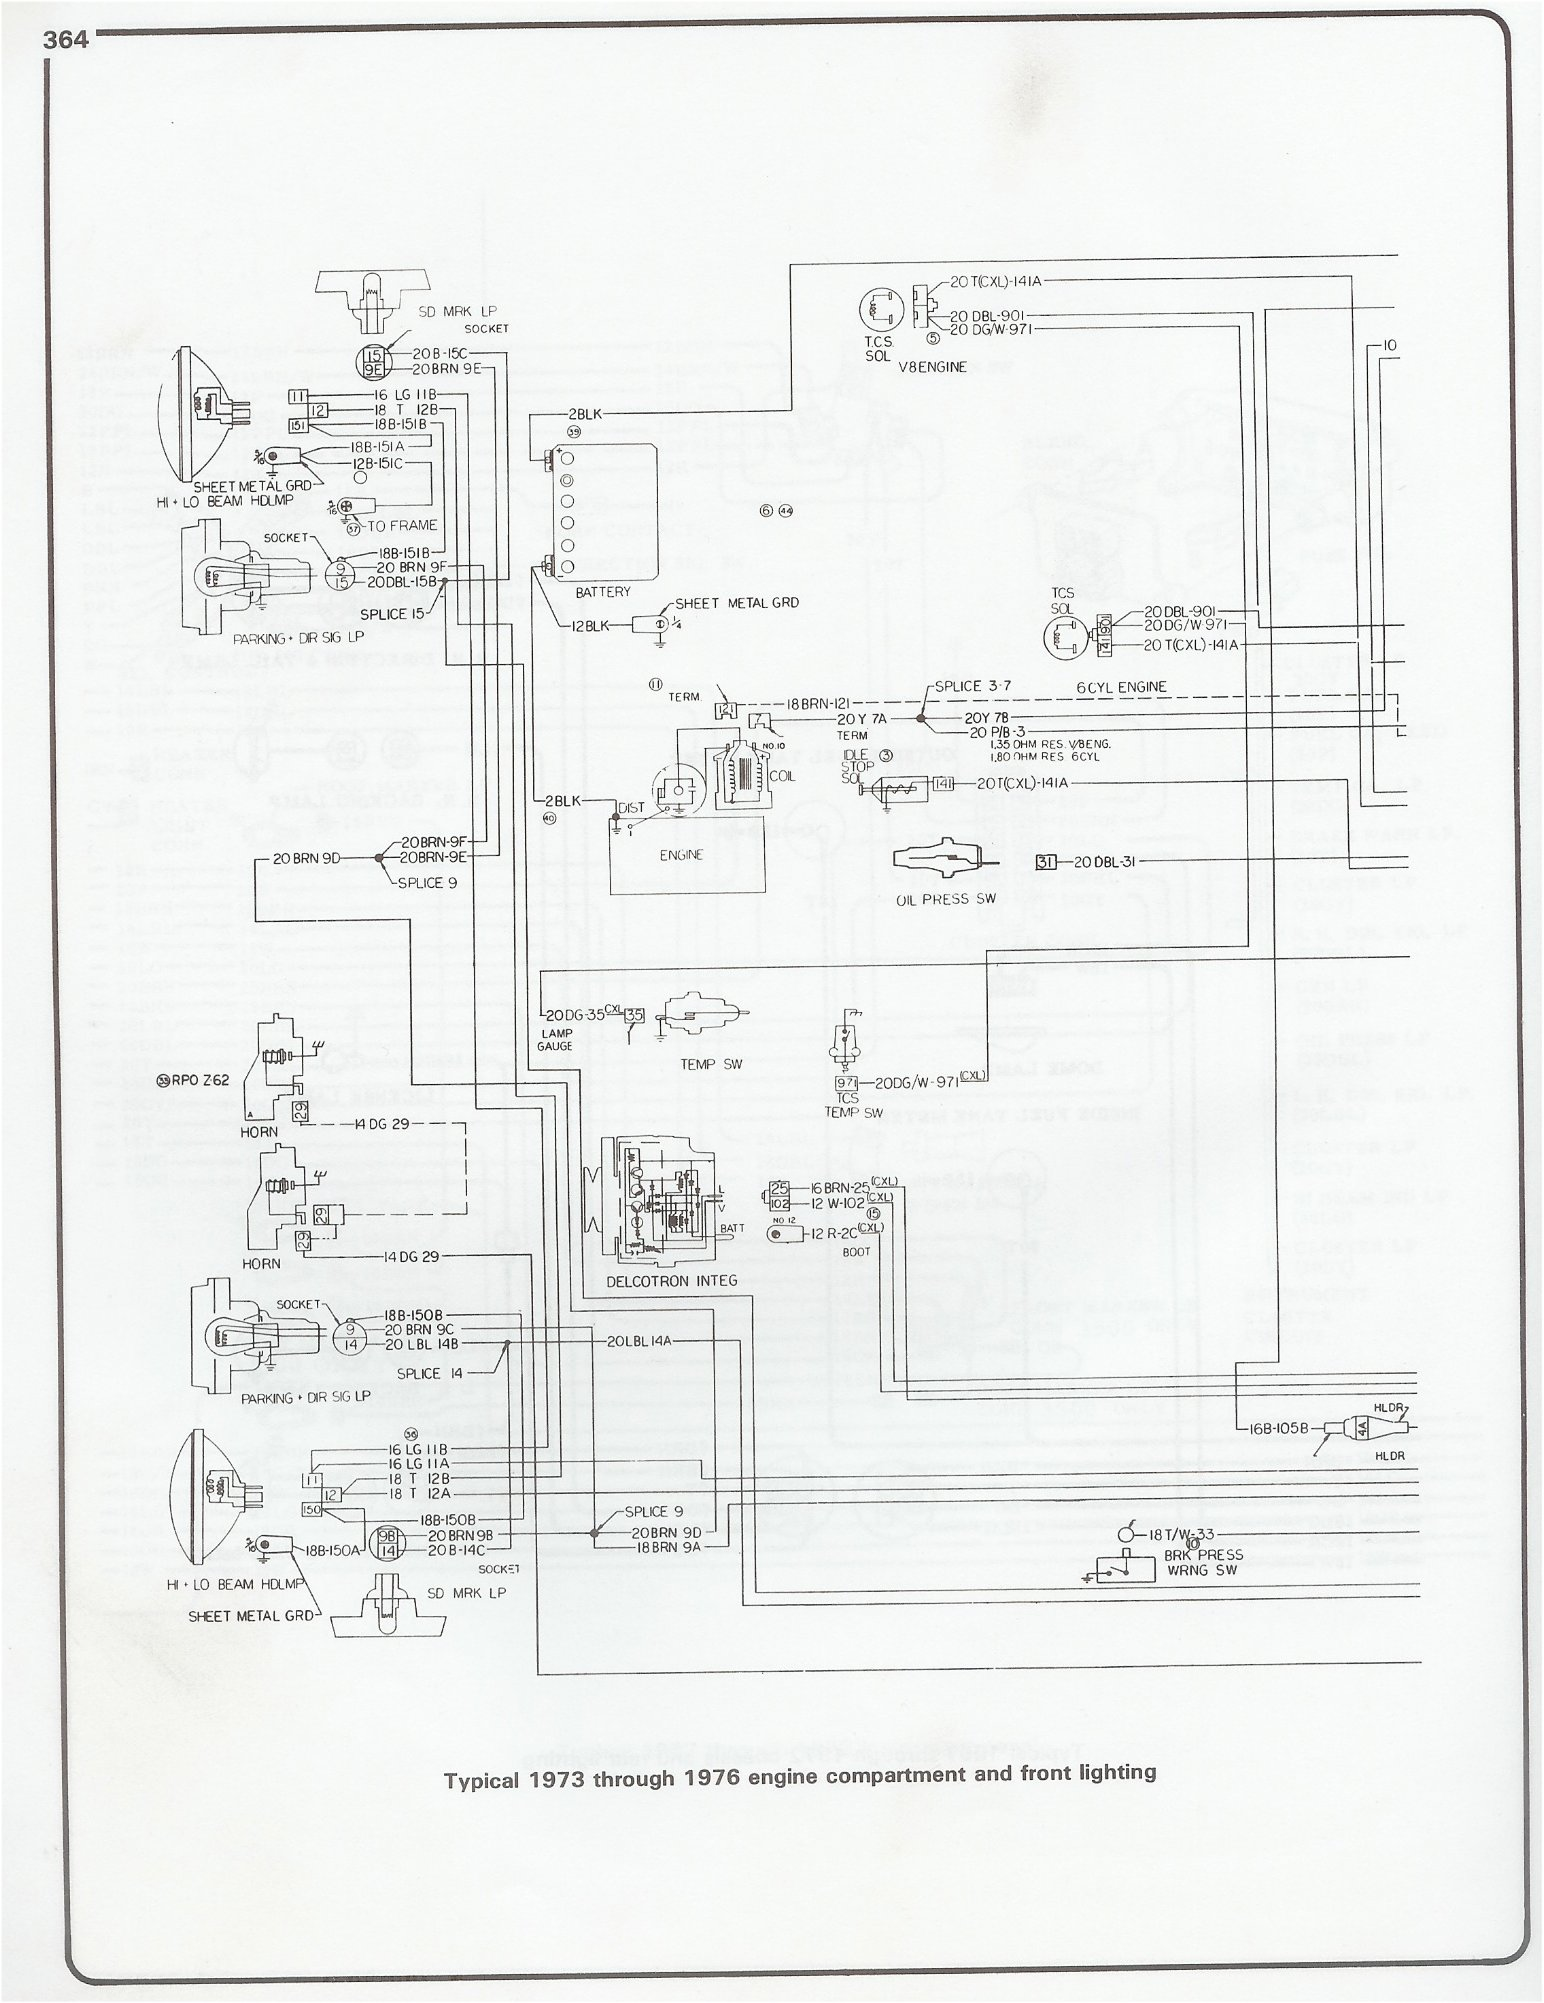 Chevrolet K 5 Engine Diagram